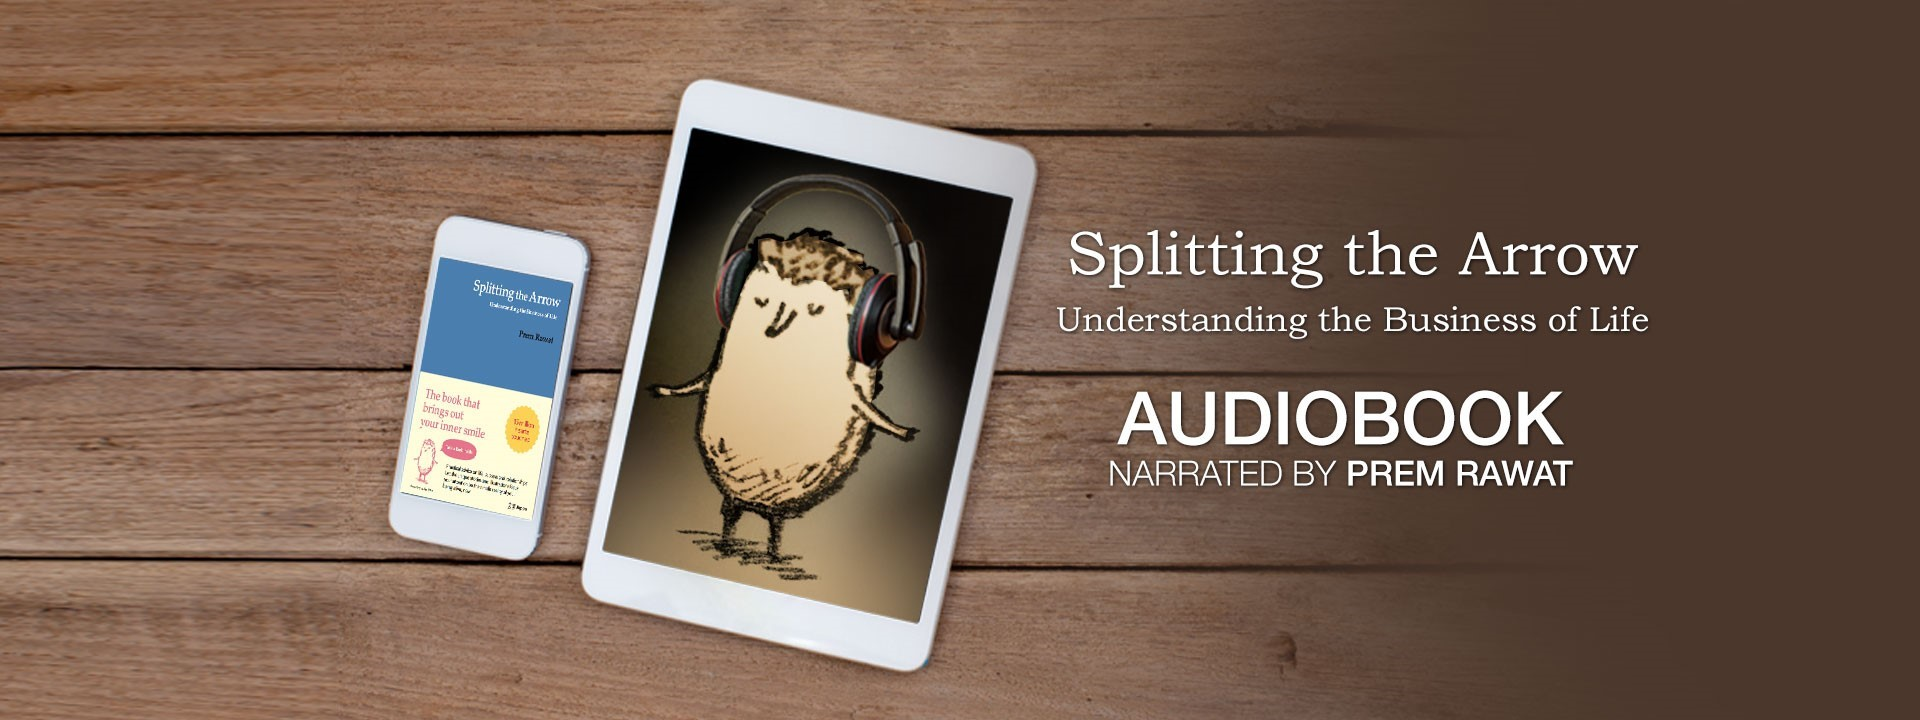 Splitting the Arrow (Audiobook)